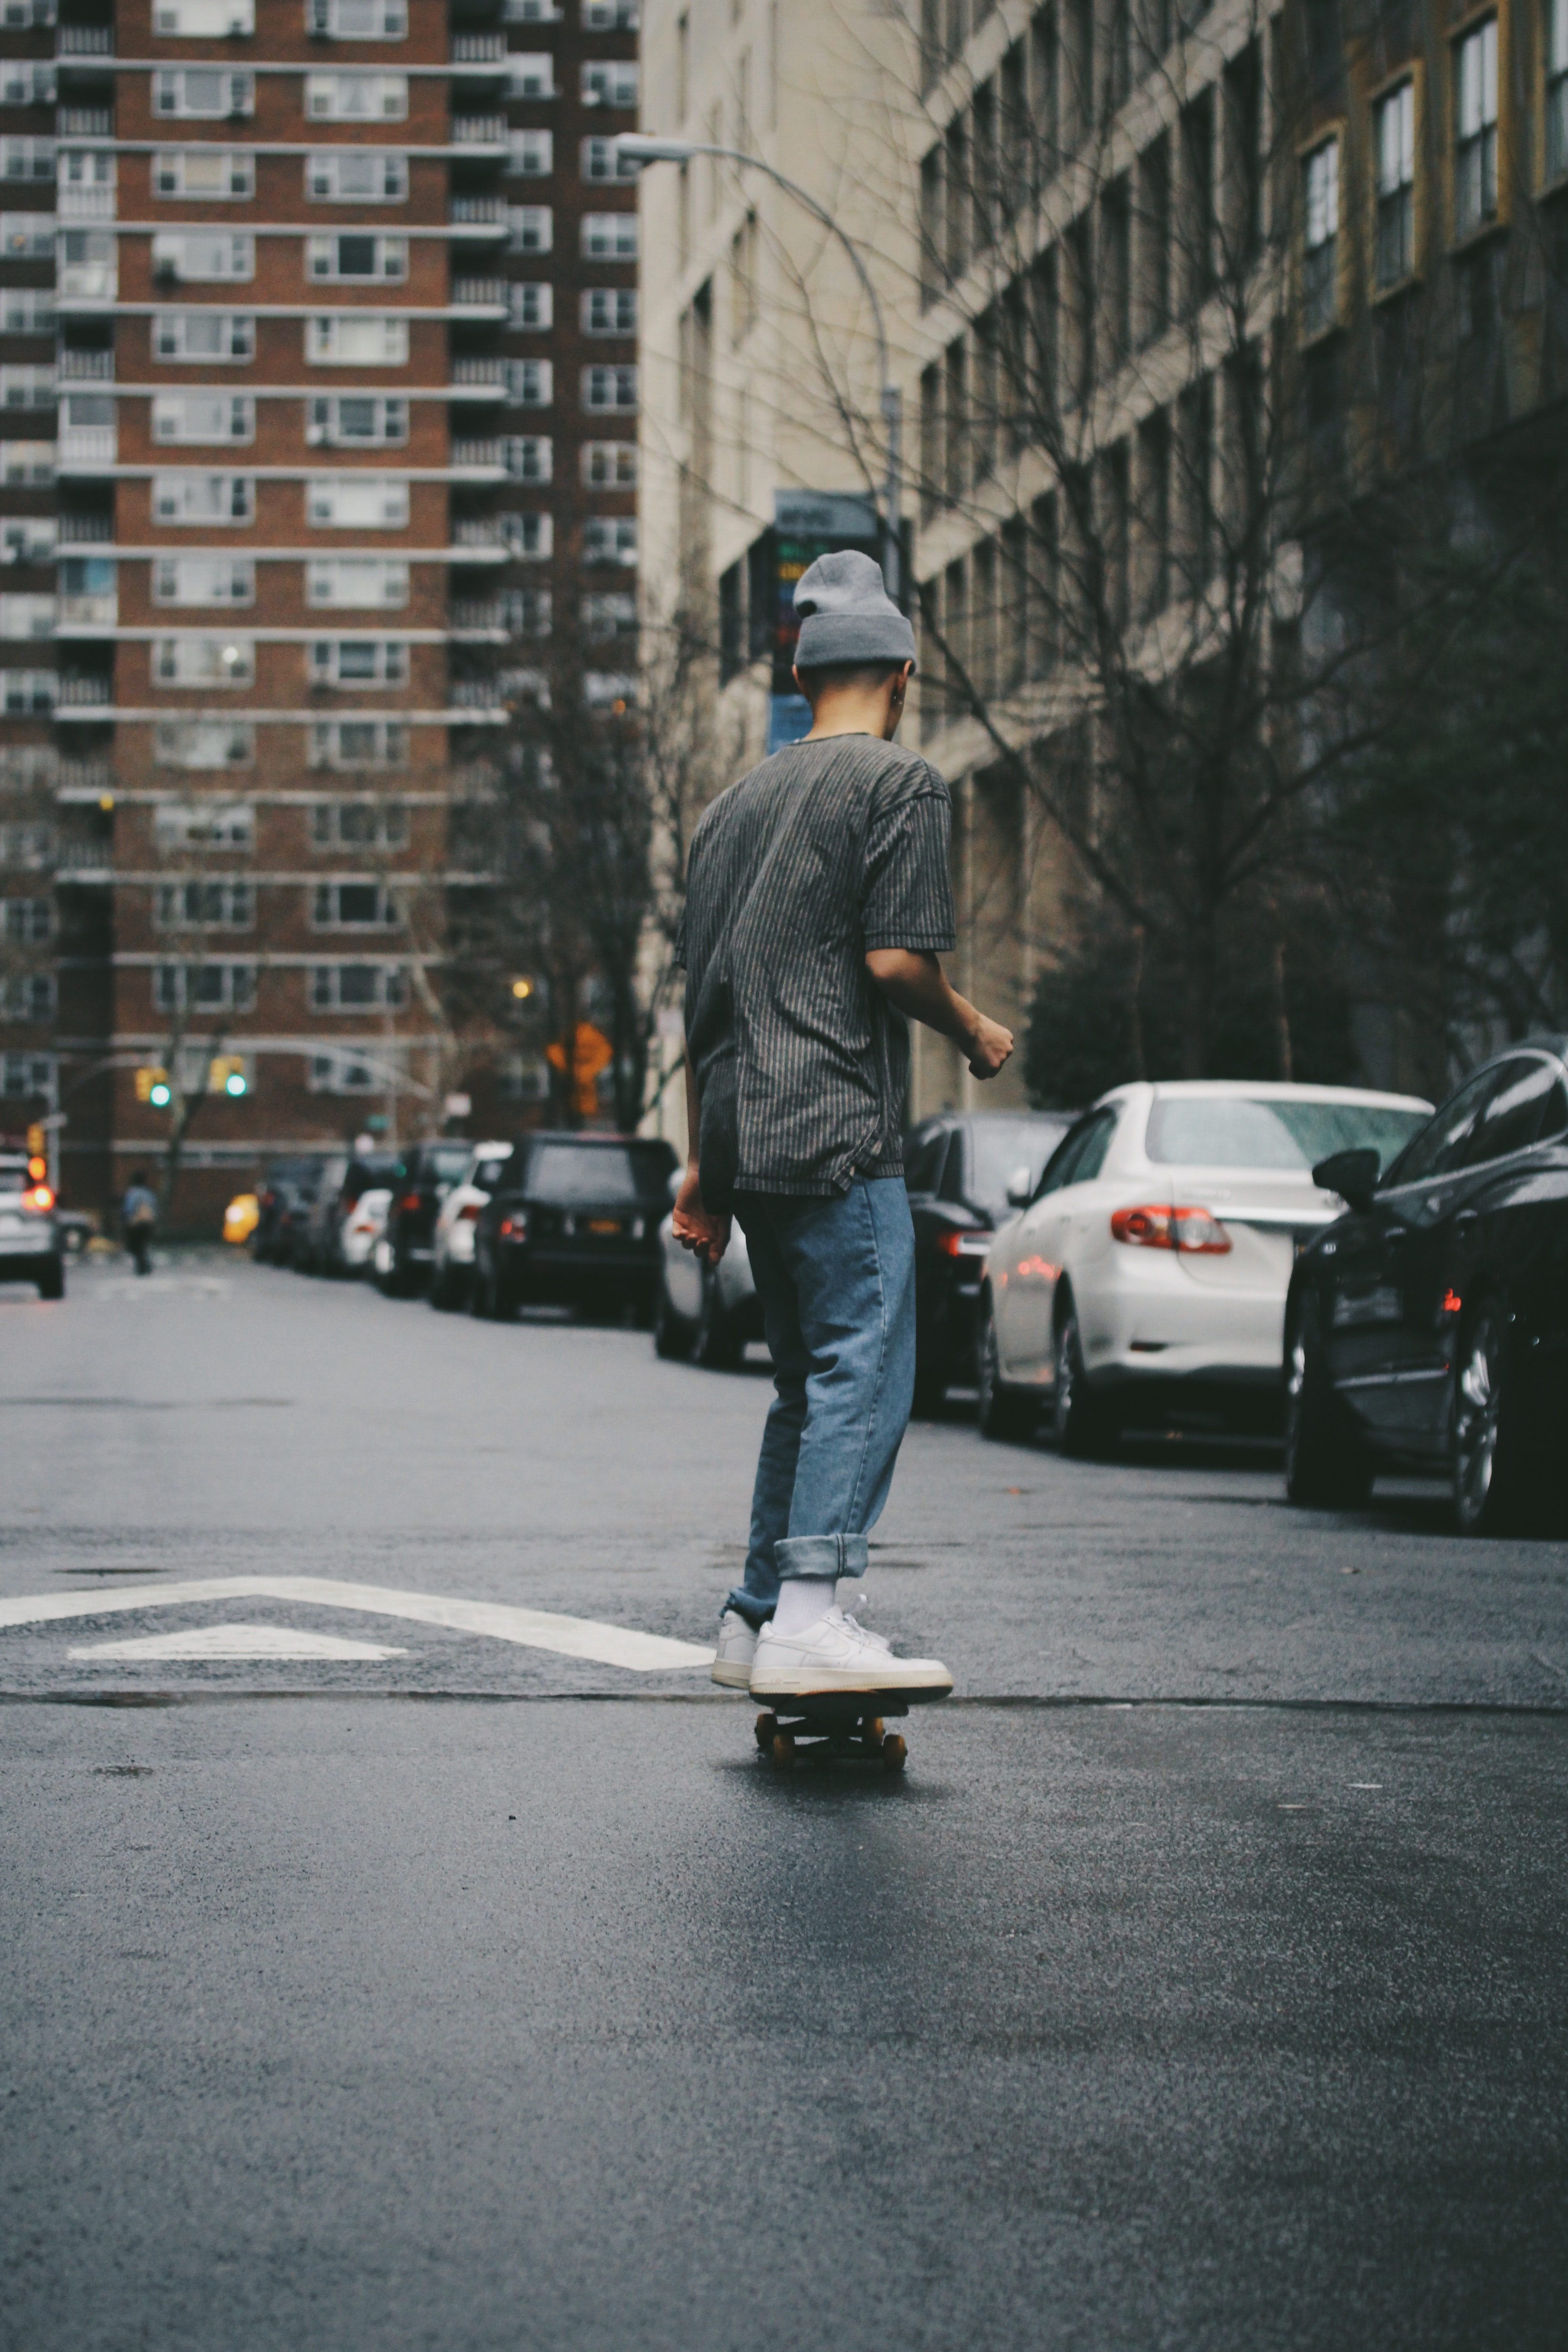 man riding skateboard near high rise building